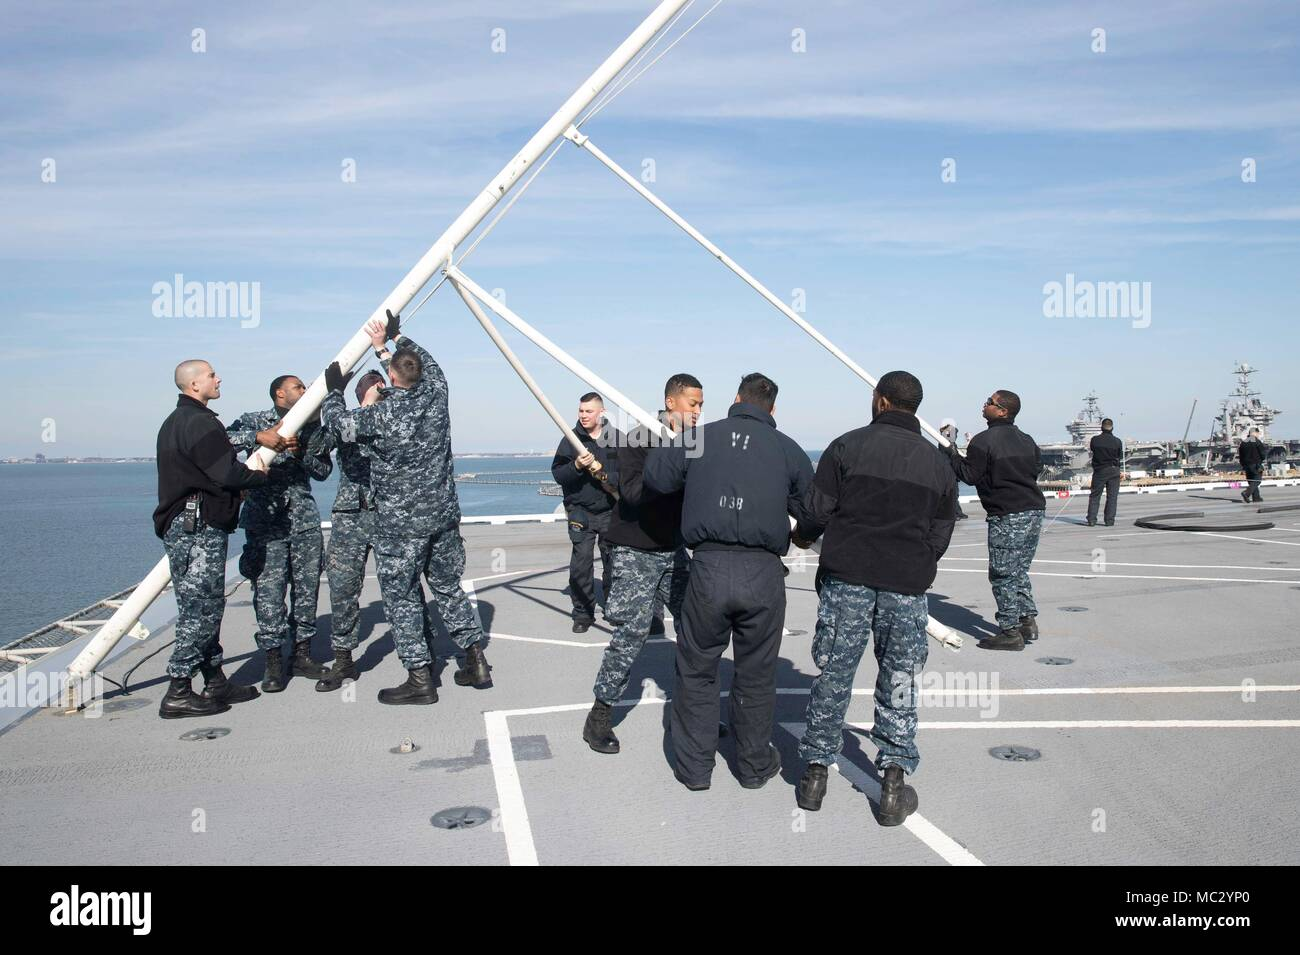 180126-N-YP246-0091 NORFOLK (Jan 26, 2018) Sailors dismantle the jack staff aboard the Nimitz-class aircraft carrier USS Abraham Lincoln (CVN 72). (U.S. Navy photo by Mass Communication Specialist Seaman Darcy McAtee/Released) - Stock Image